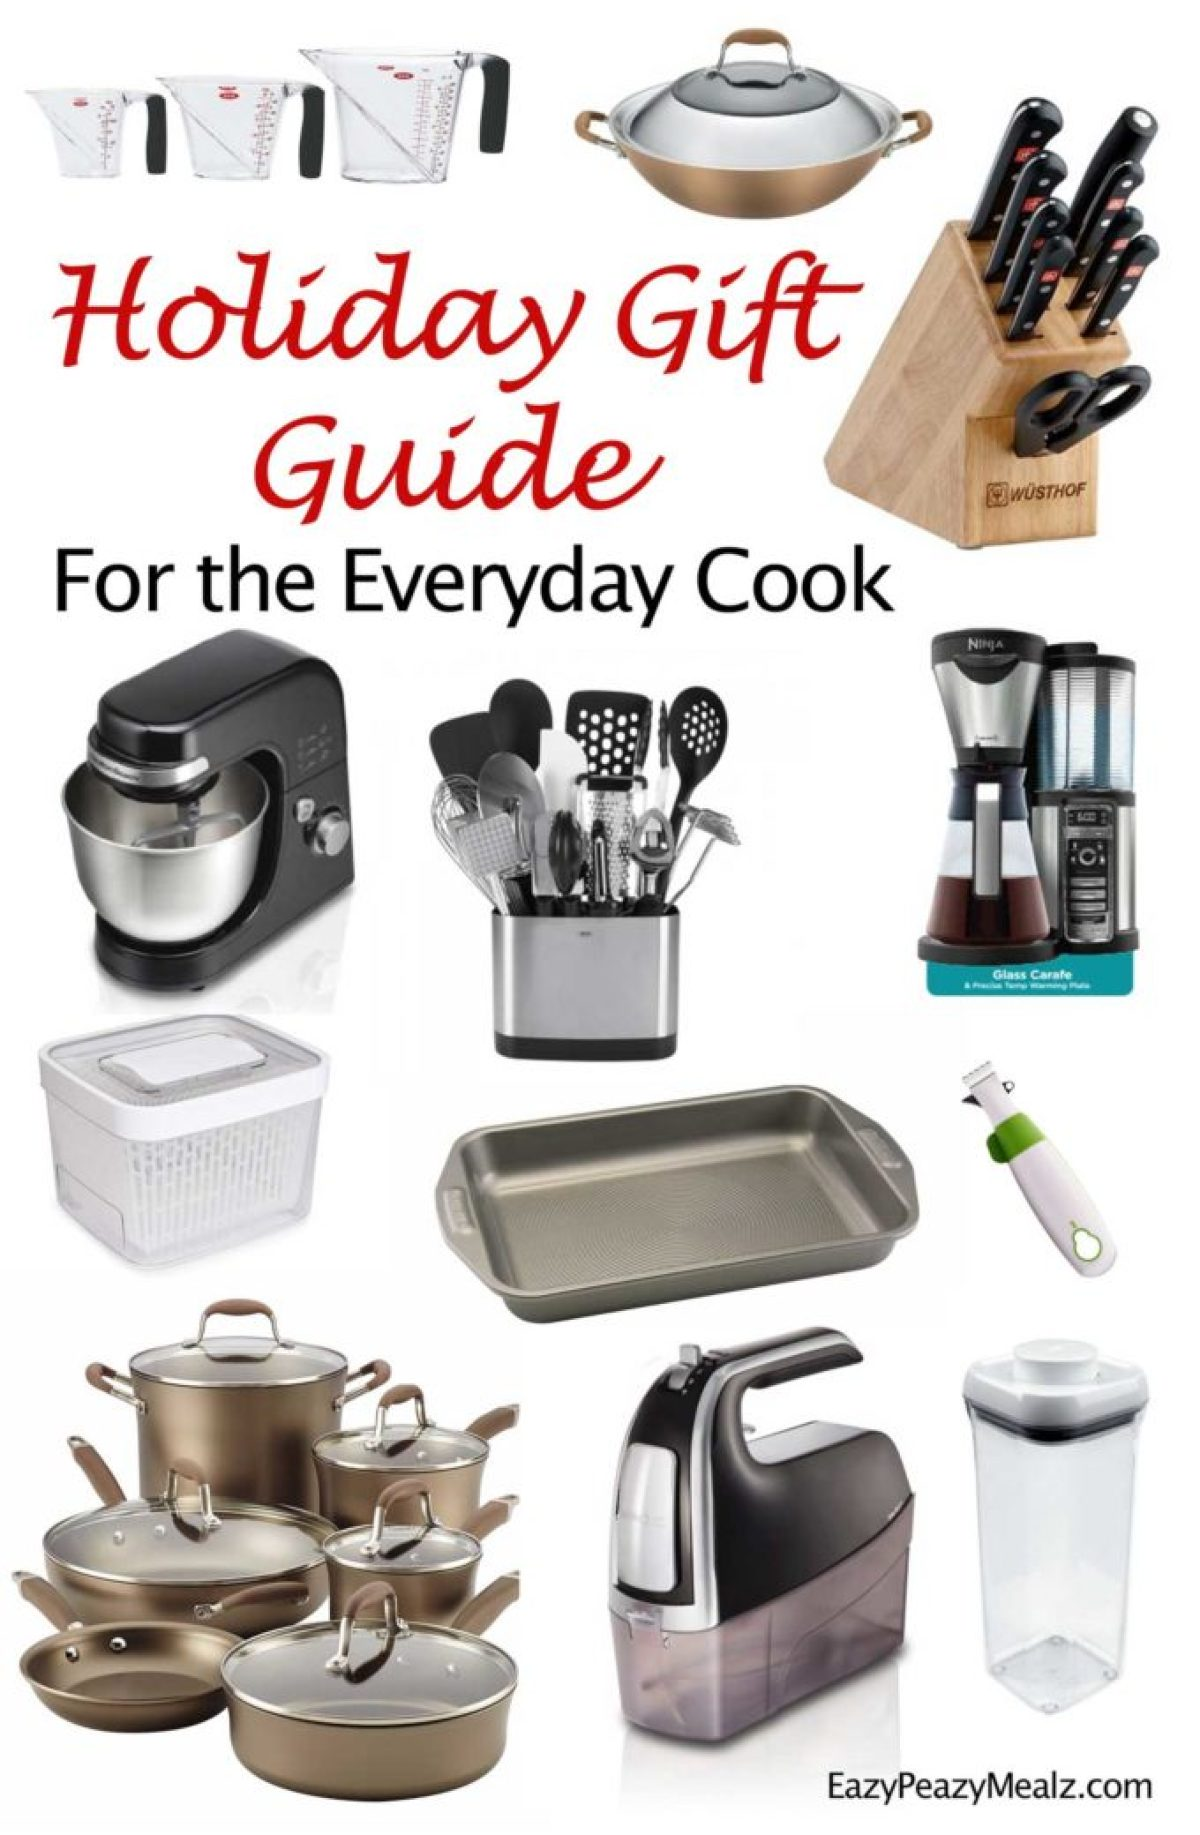 A holiday gift guide for the everyday home cook! My favorite kitchen tools for cooking for your family.